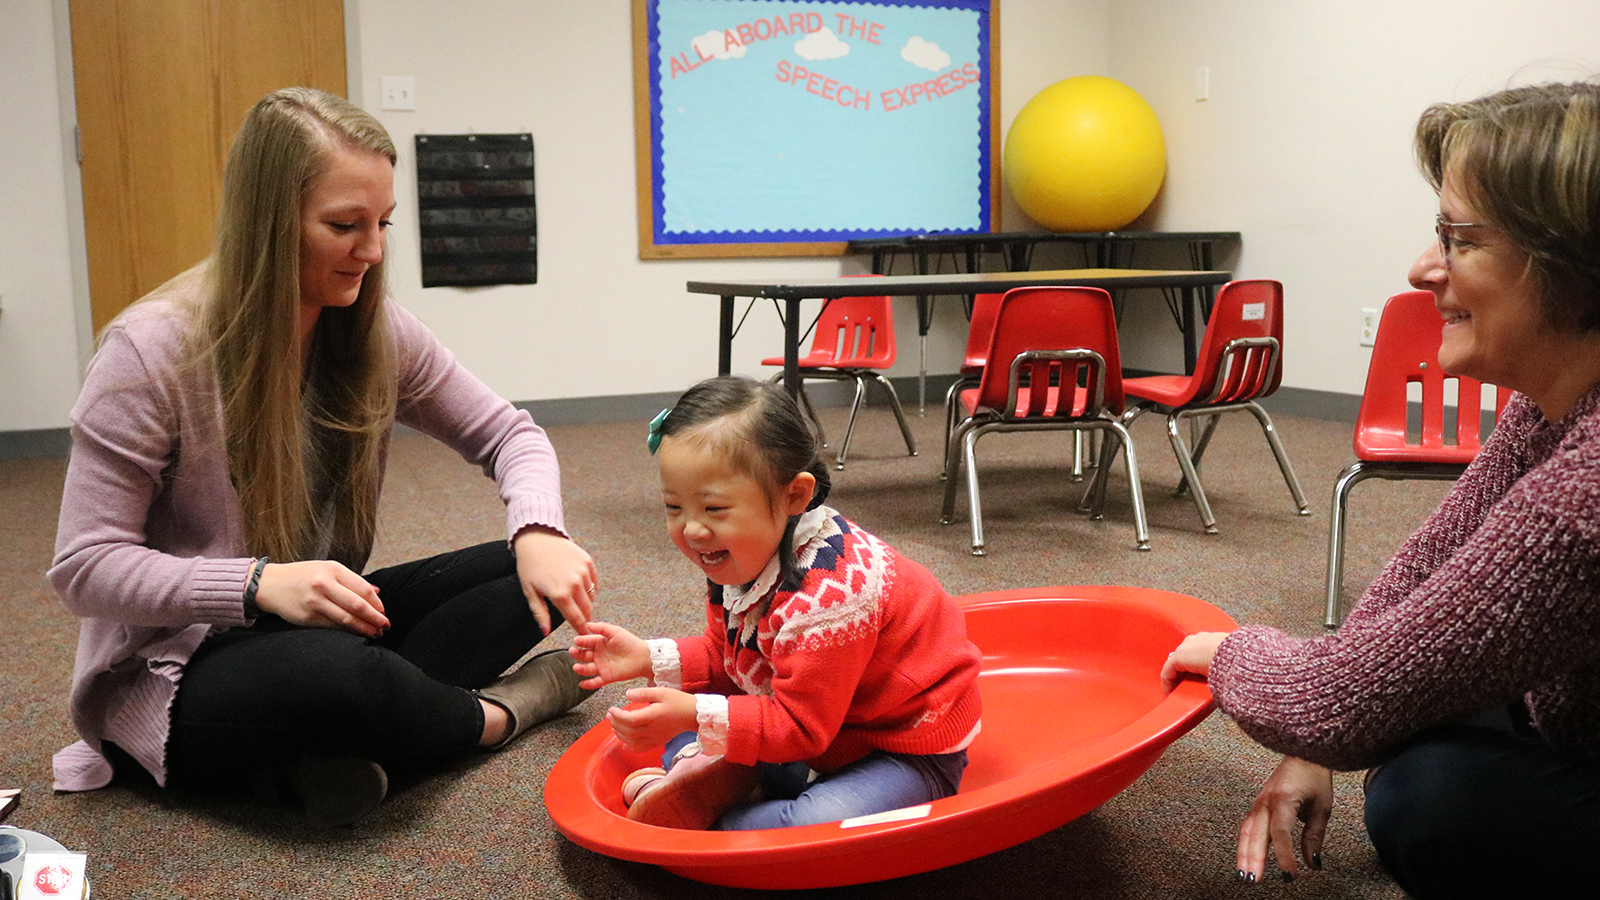 A Husker graduate clinician and her supervisor, Beth Dinneen, share in activities with a young girl with down syndrome during a speech therapy session at the Barkley Speech Language and Hearing Clinic.